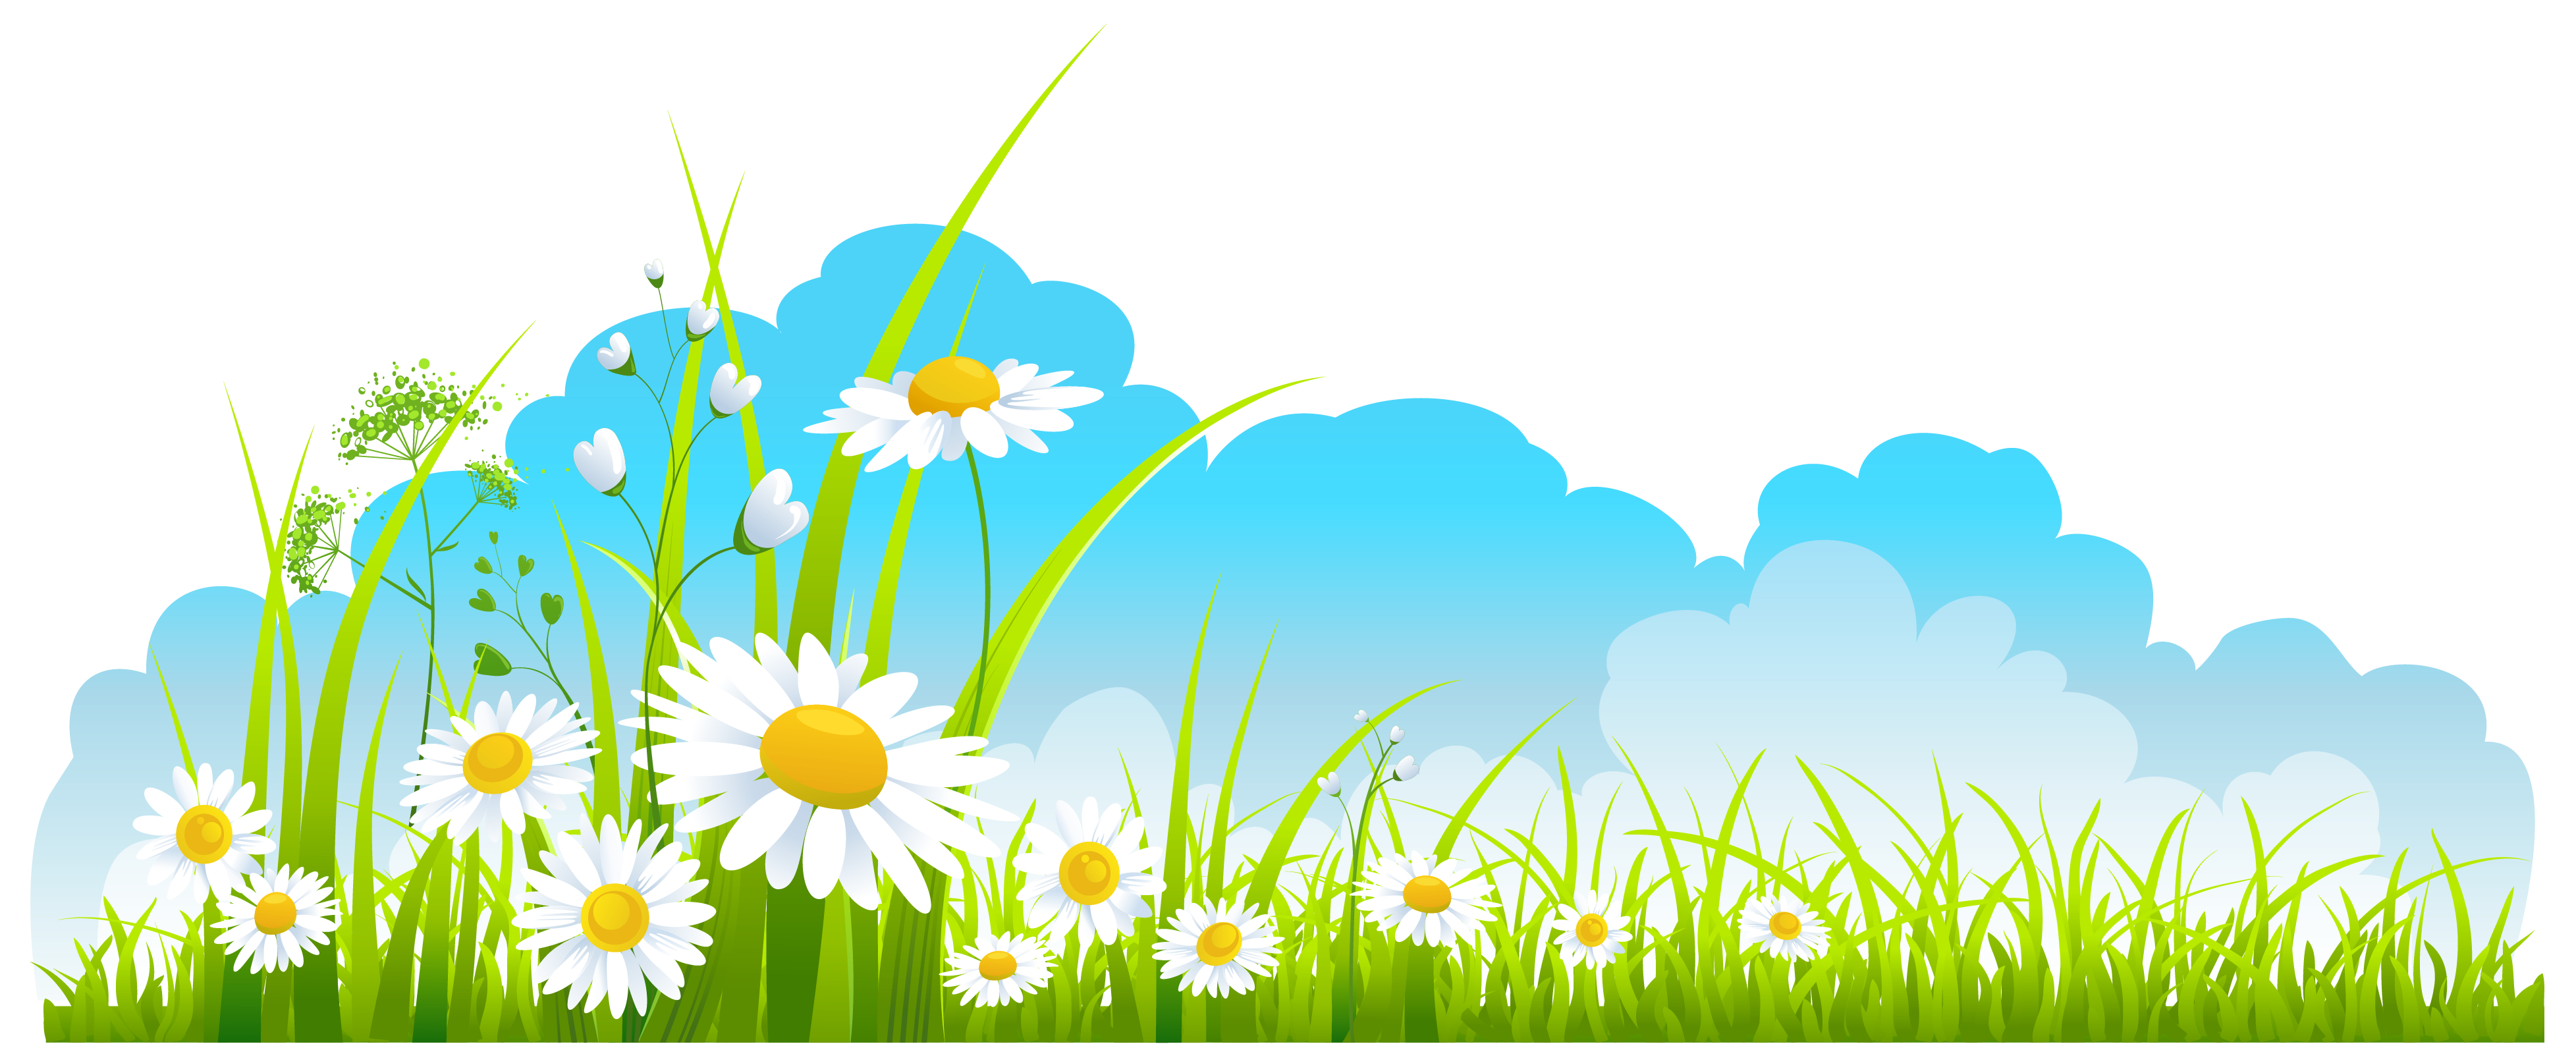 spring vacation clipart - photo #49